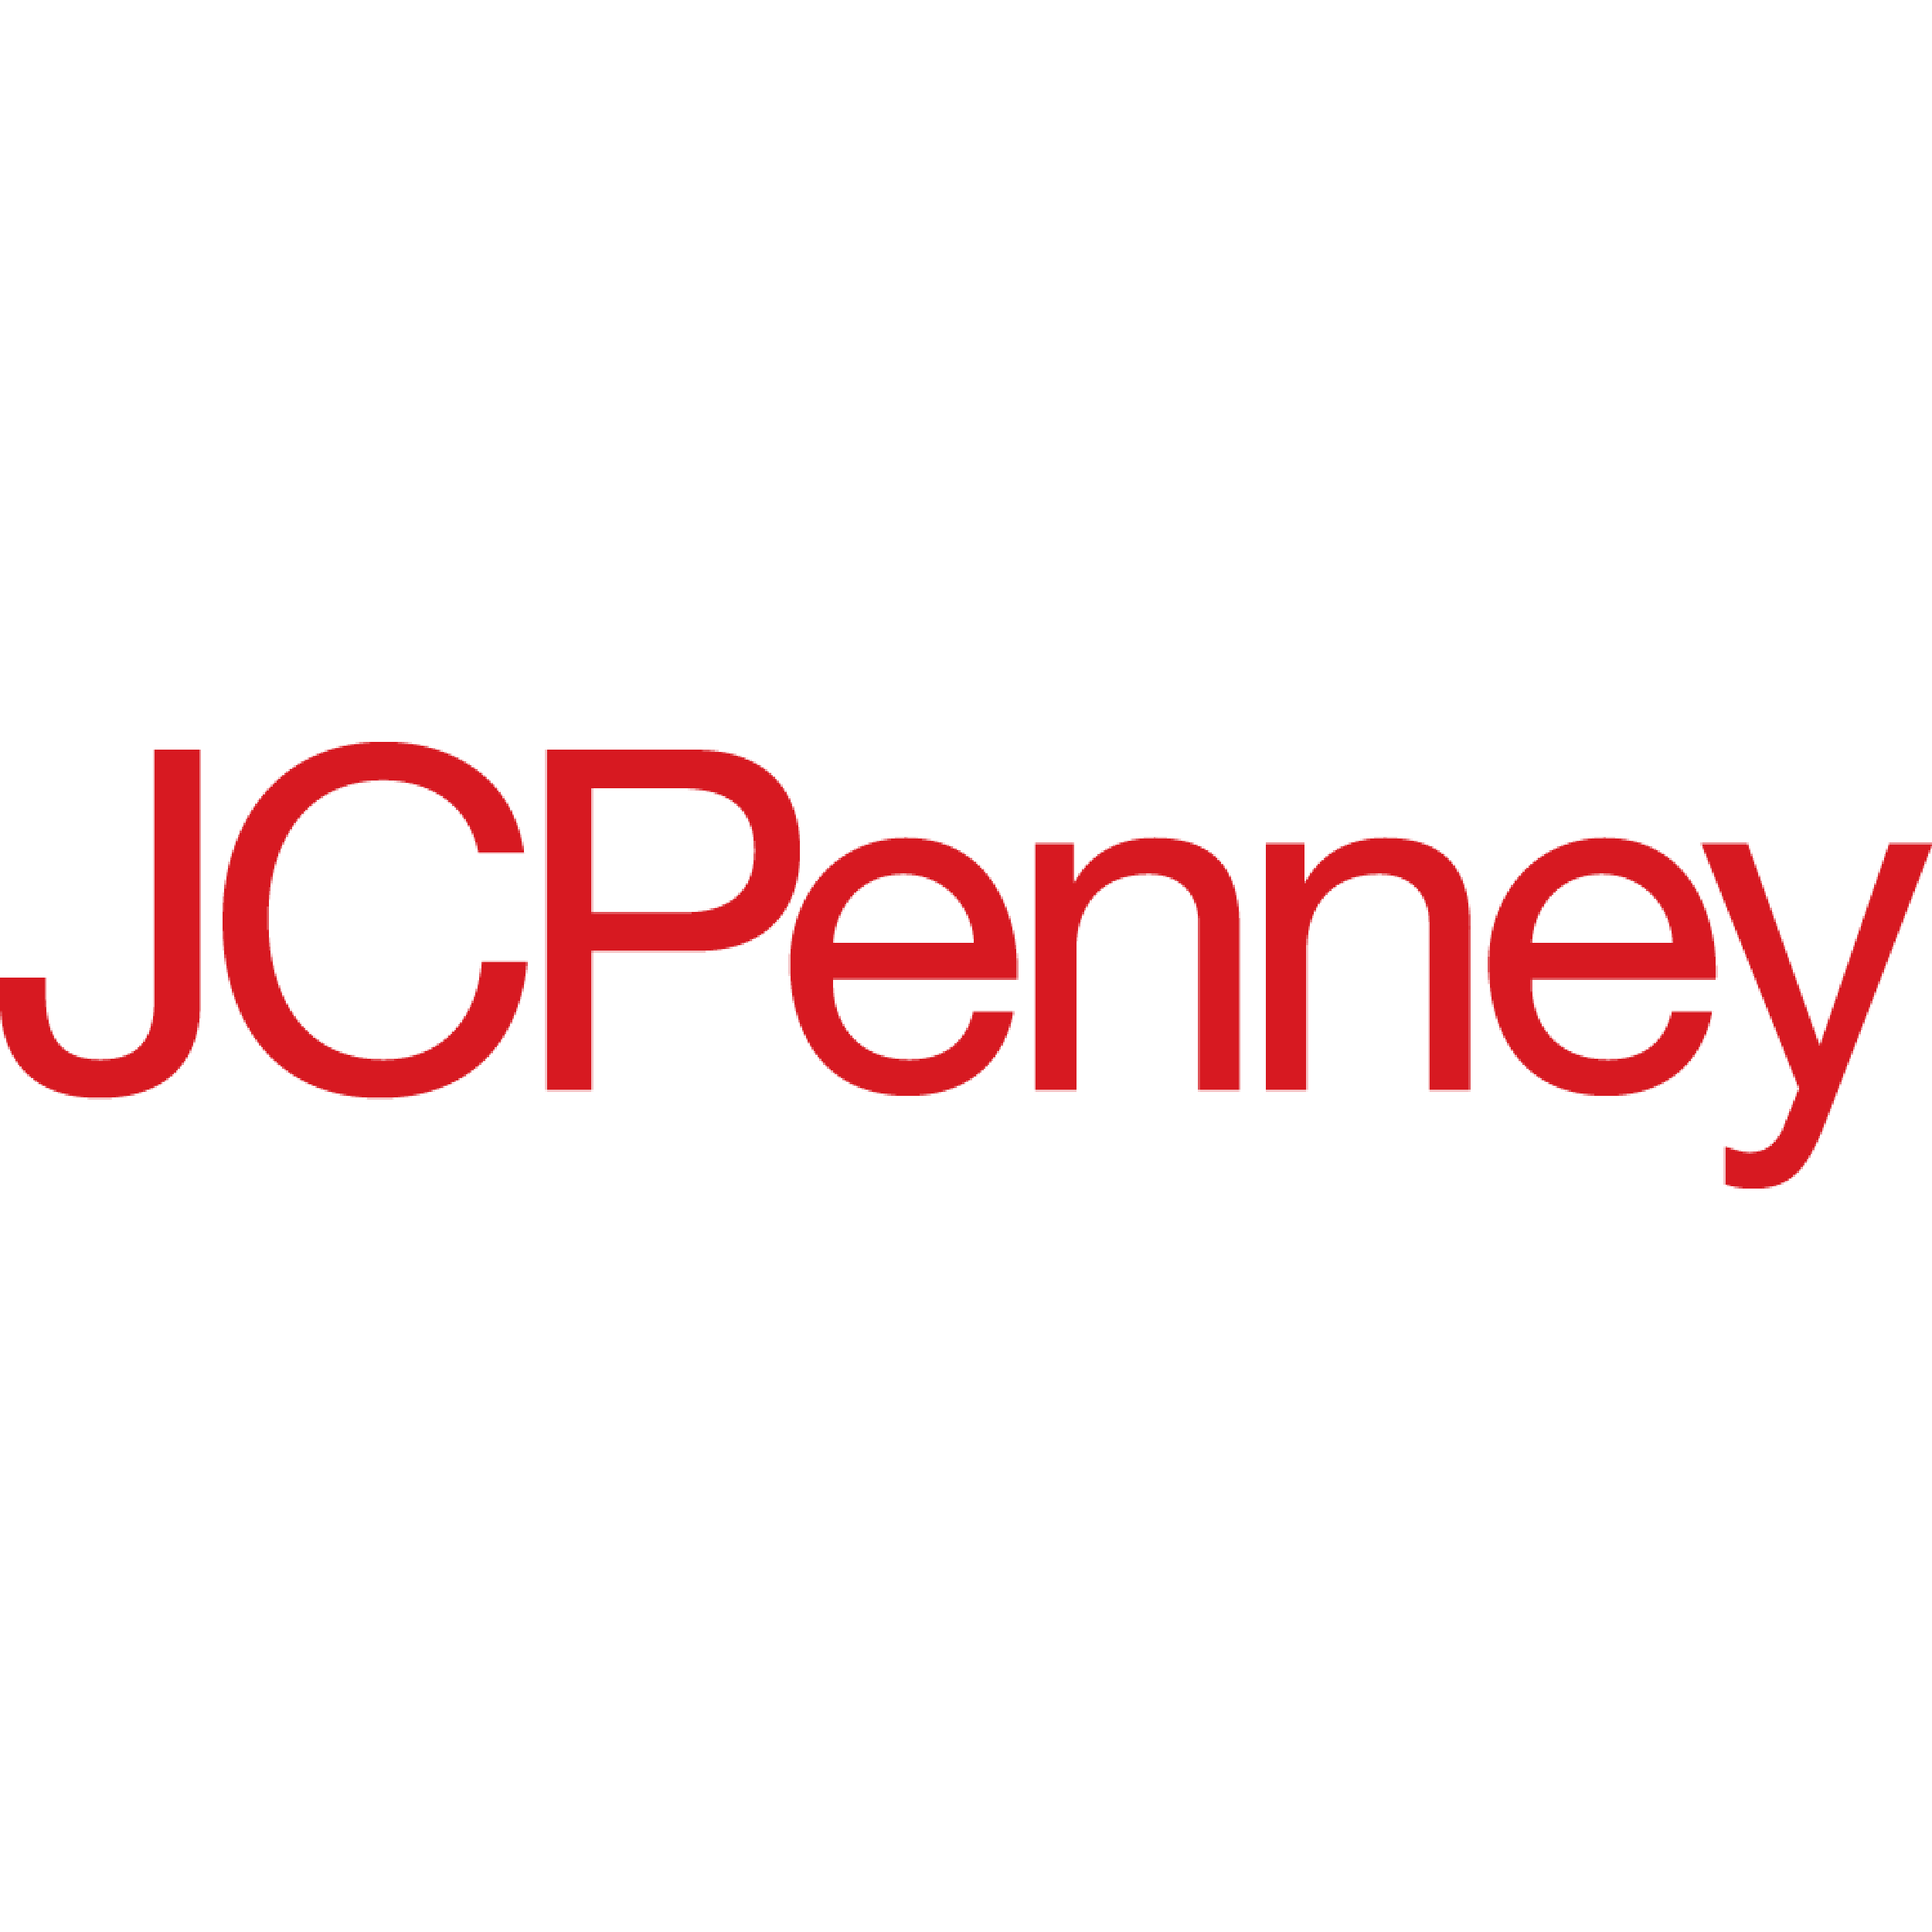 JCPenney - Kingman, AZ 86401 - (928)753-1211 | ShowMeLocal.com